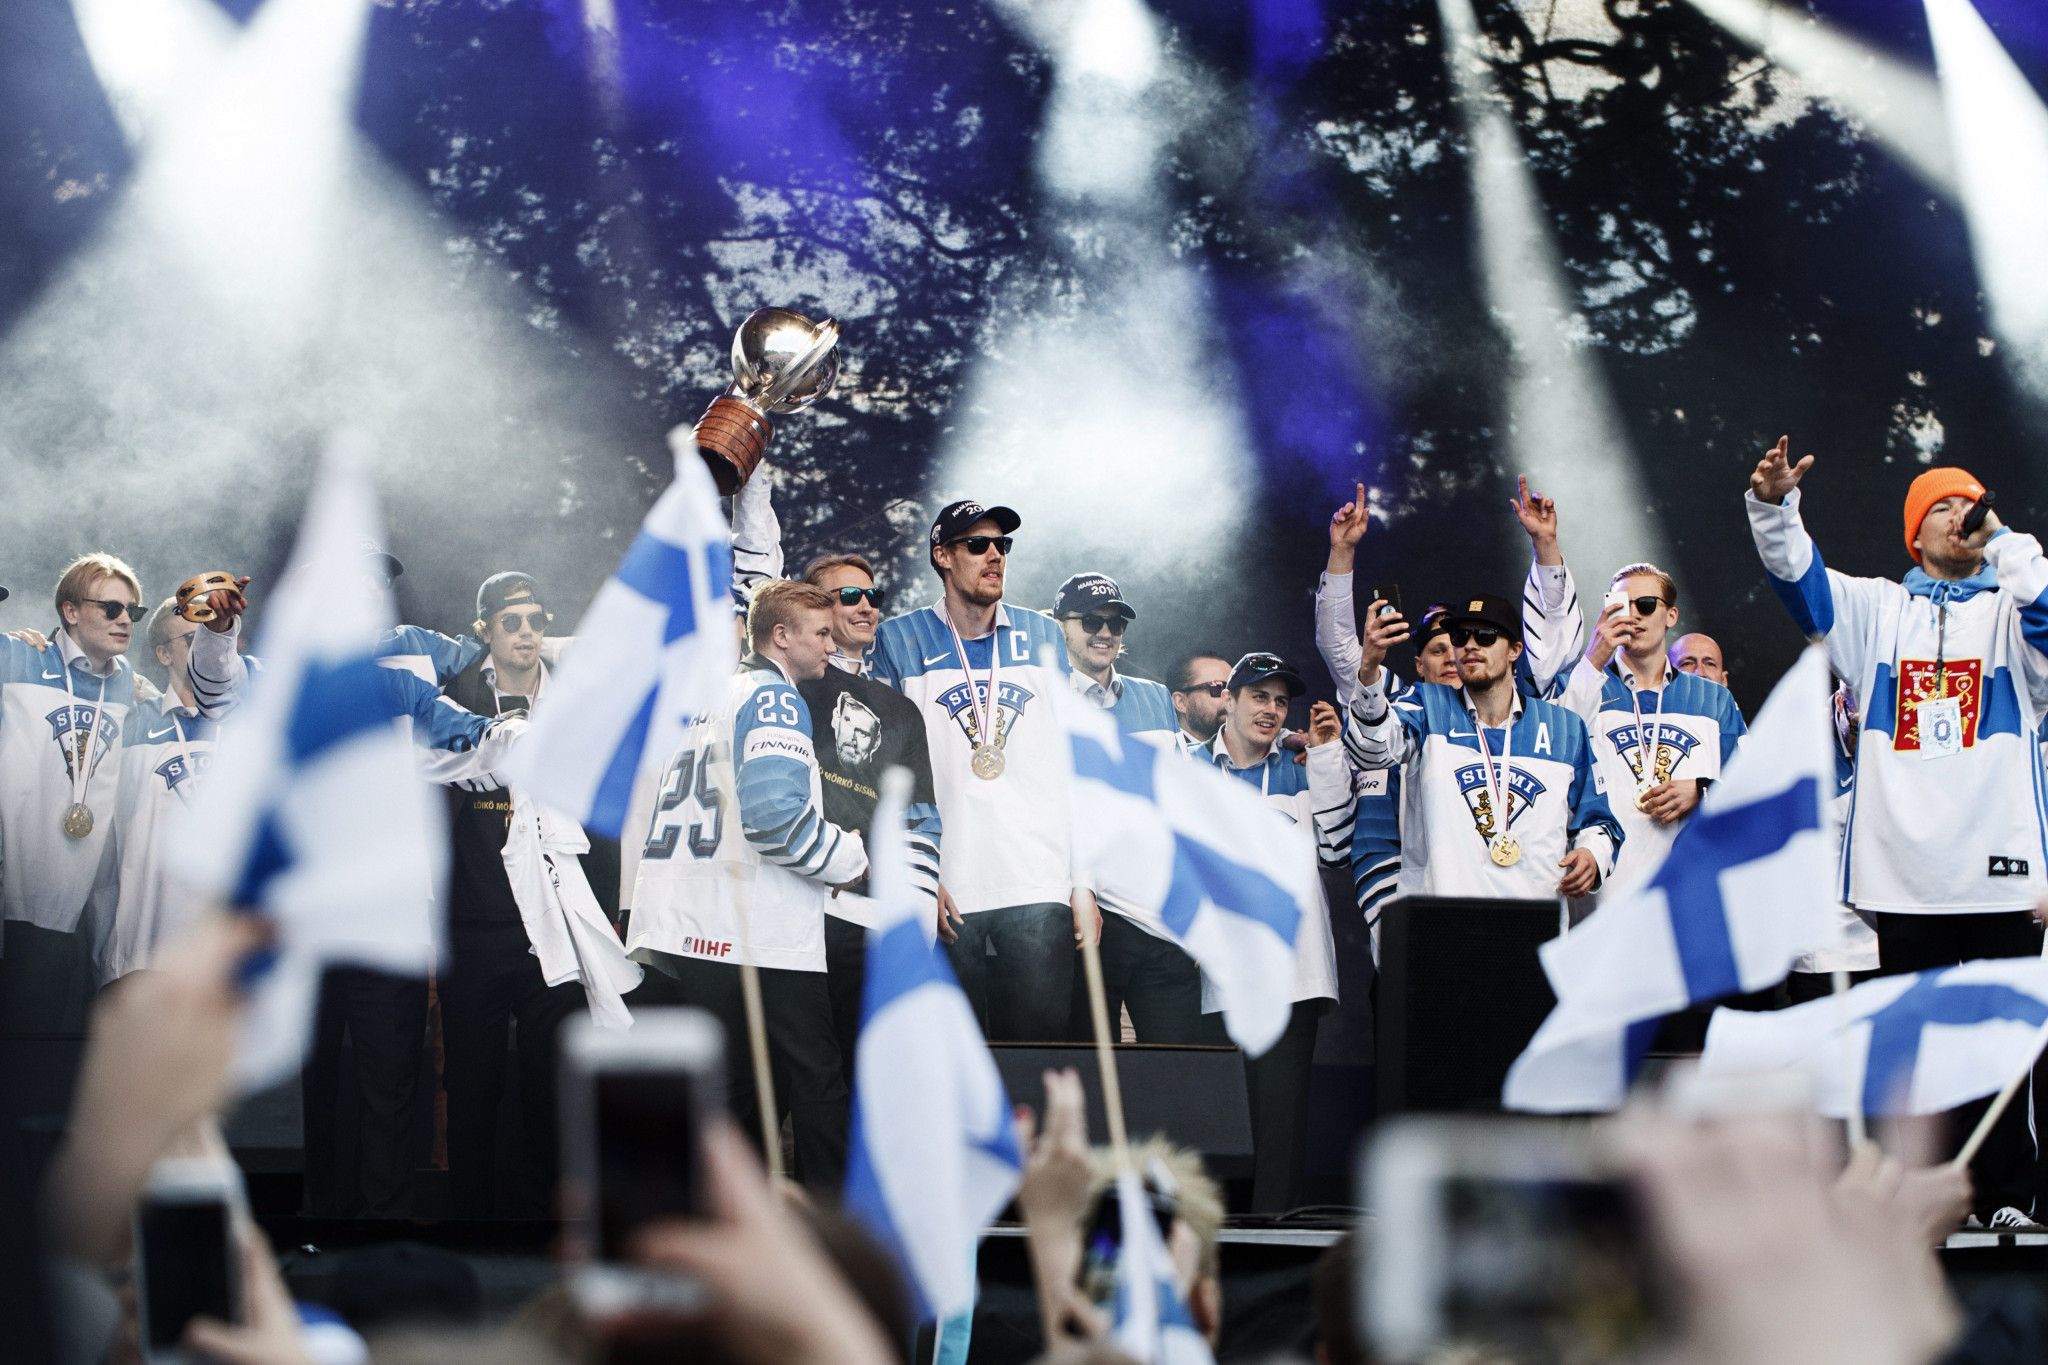 Finland claimed their first world title since 2011 with victory over Canada in this year's final ©Getty Images